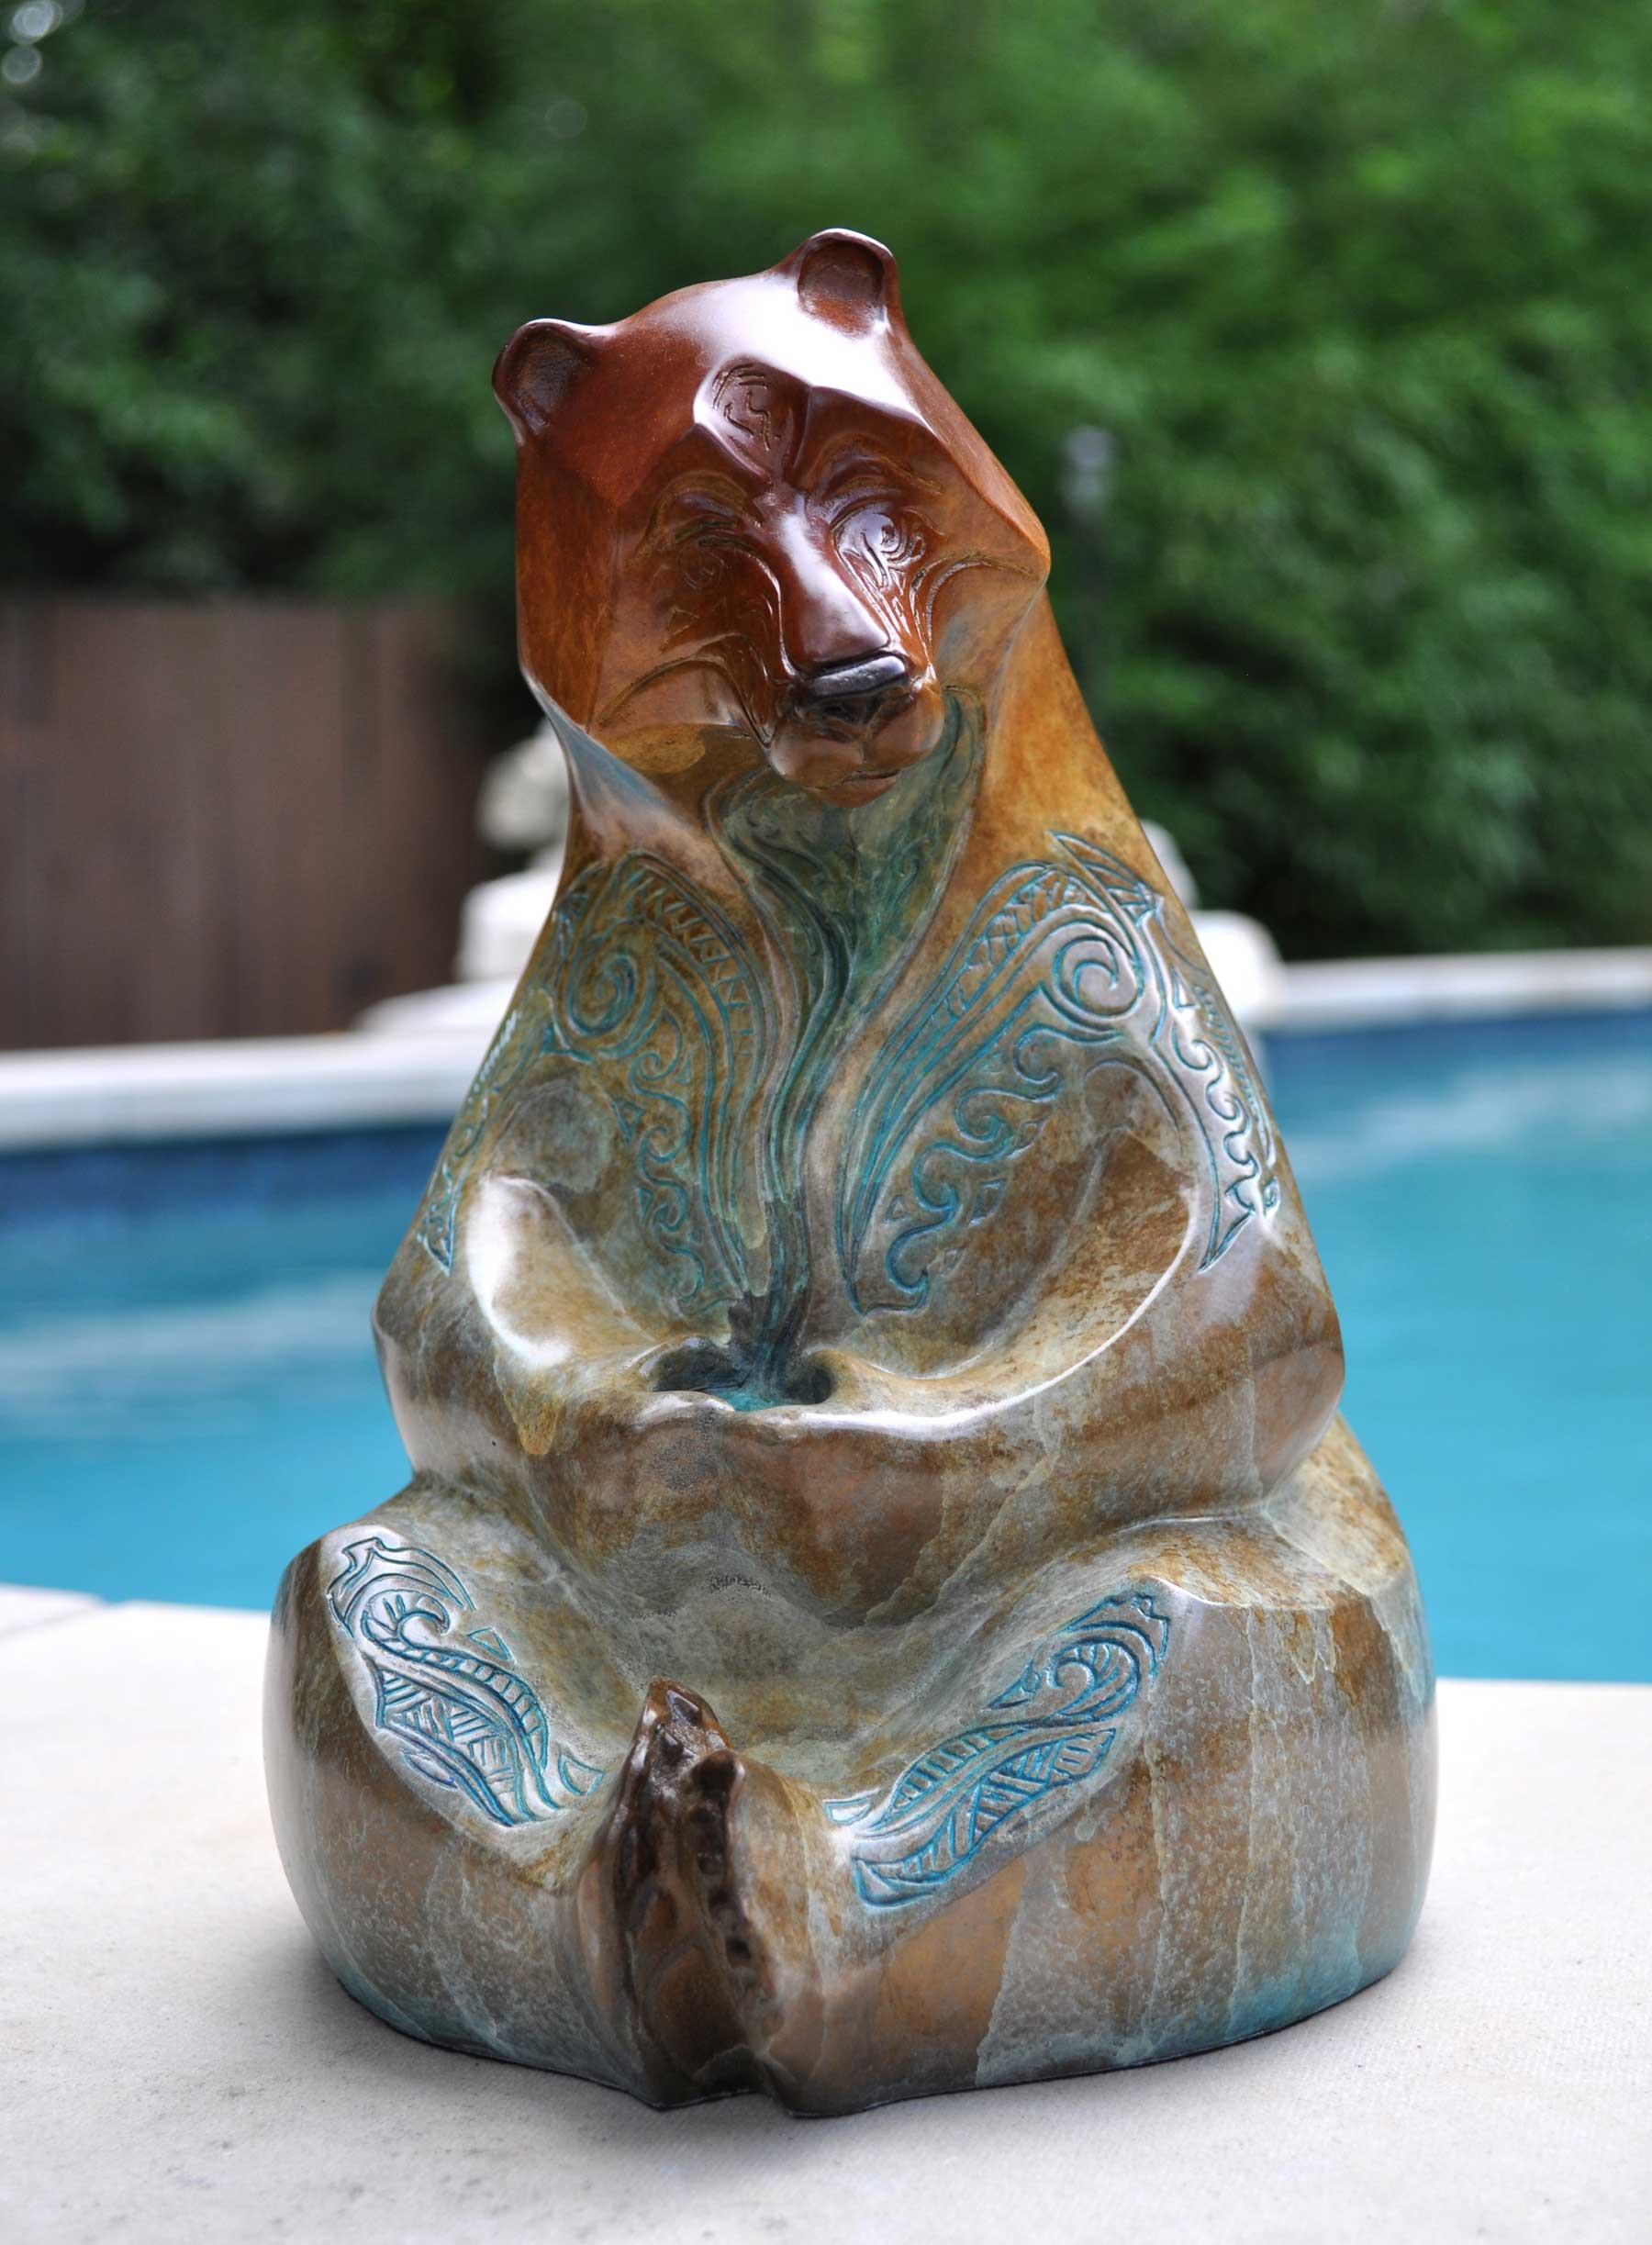 Hilo-Bronze-Bear-Sculpture-Small-John-Maisano-5.jpg